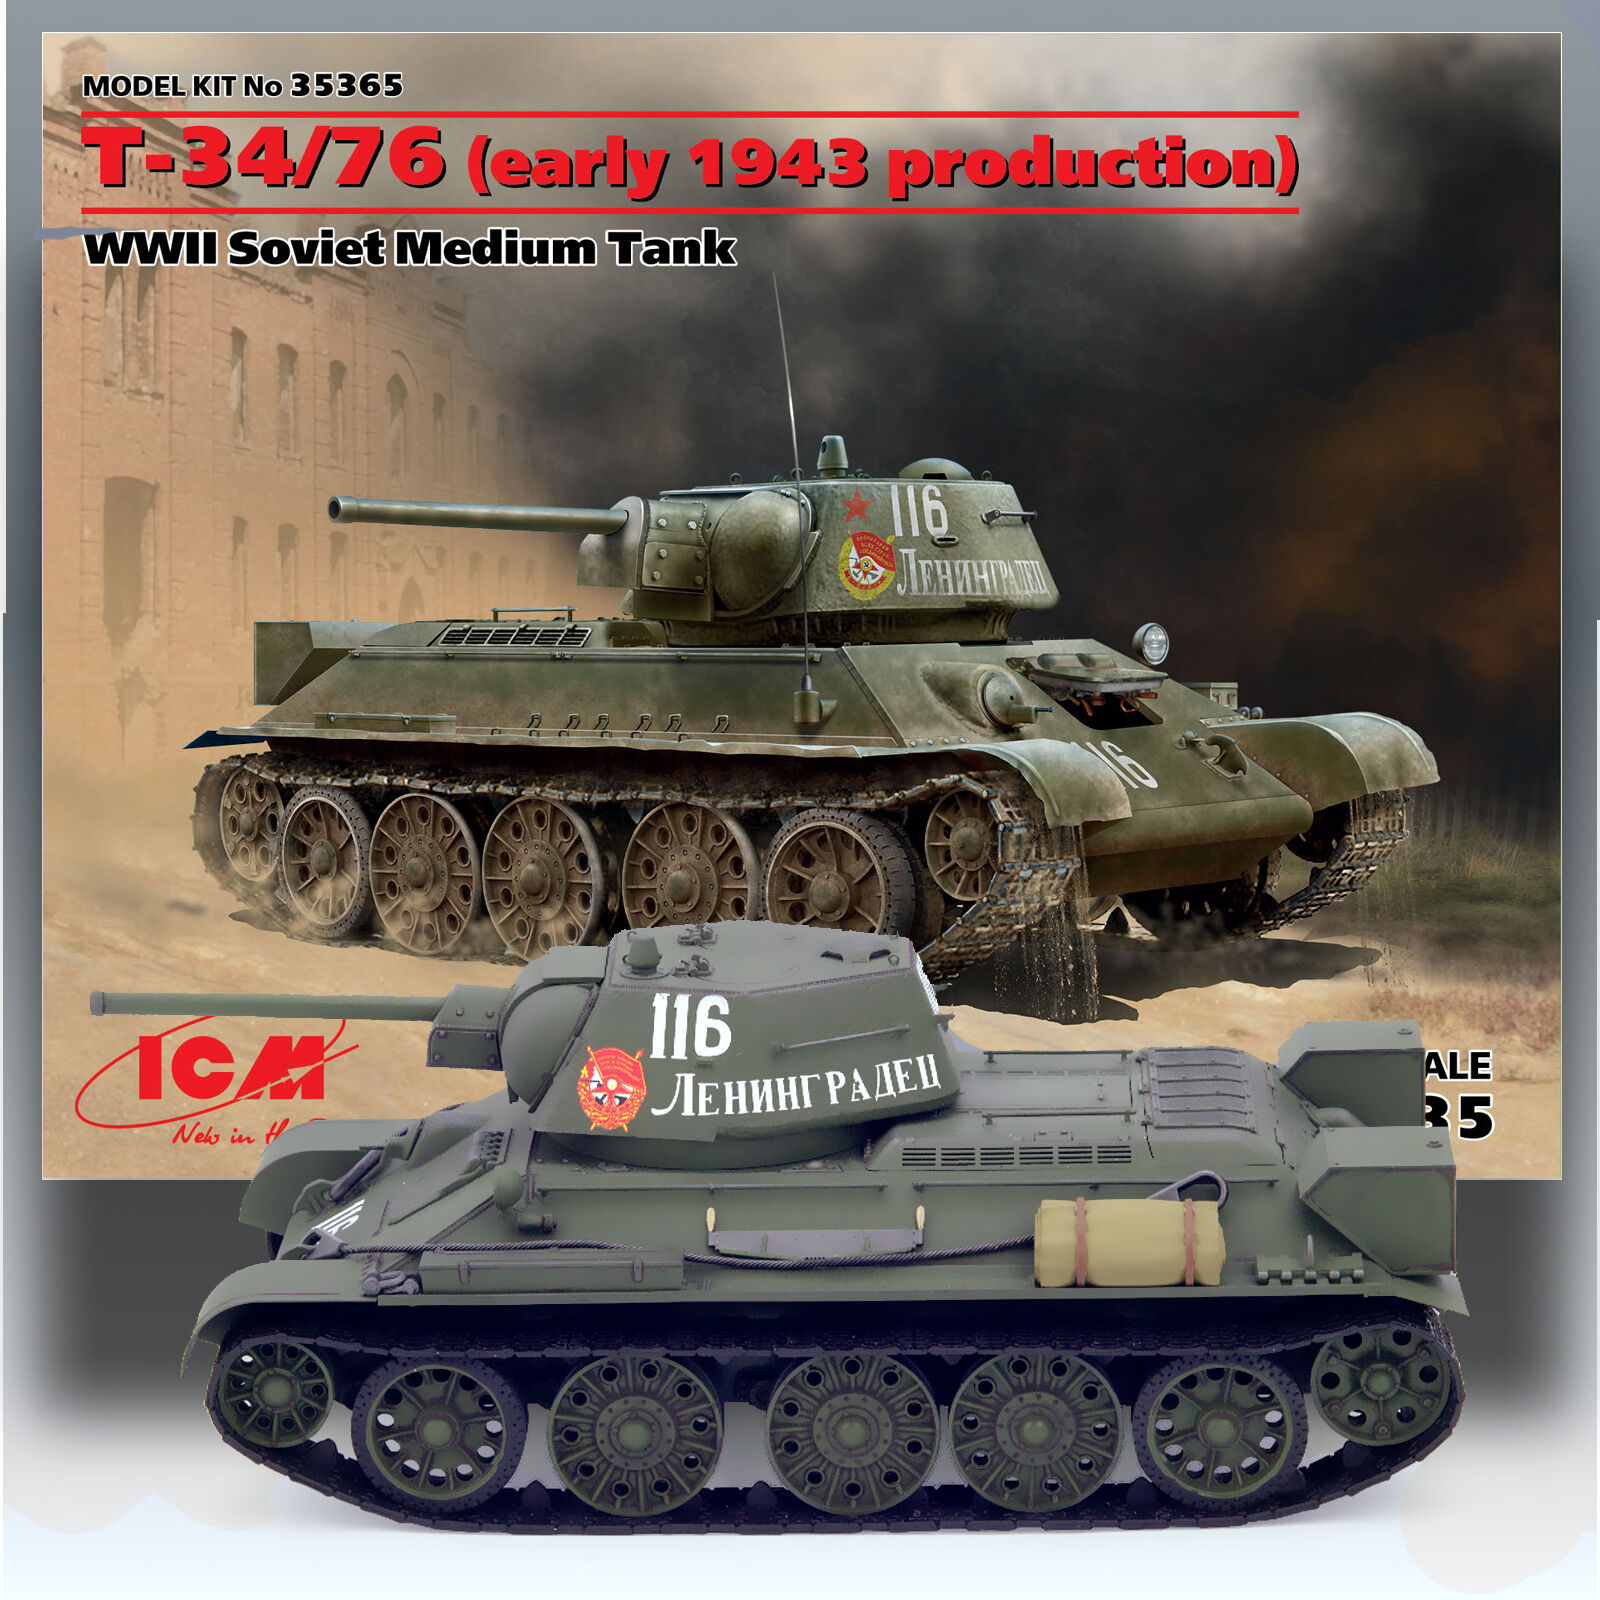 ICM 1/35 T-34/76 (Early 1943 Production) Wwii Soviet